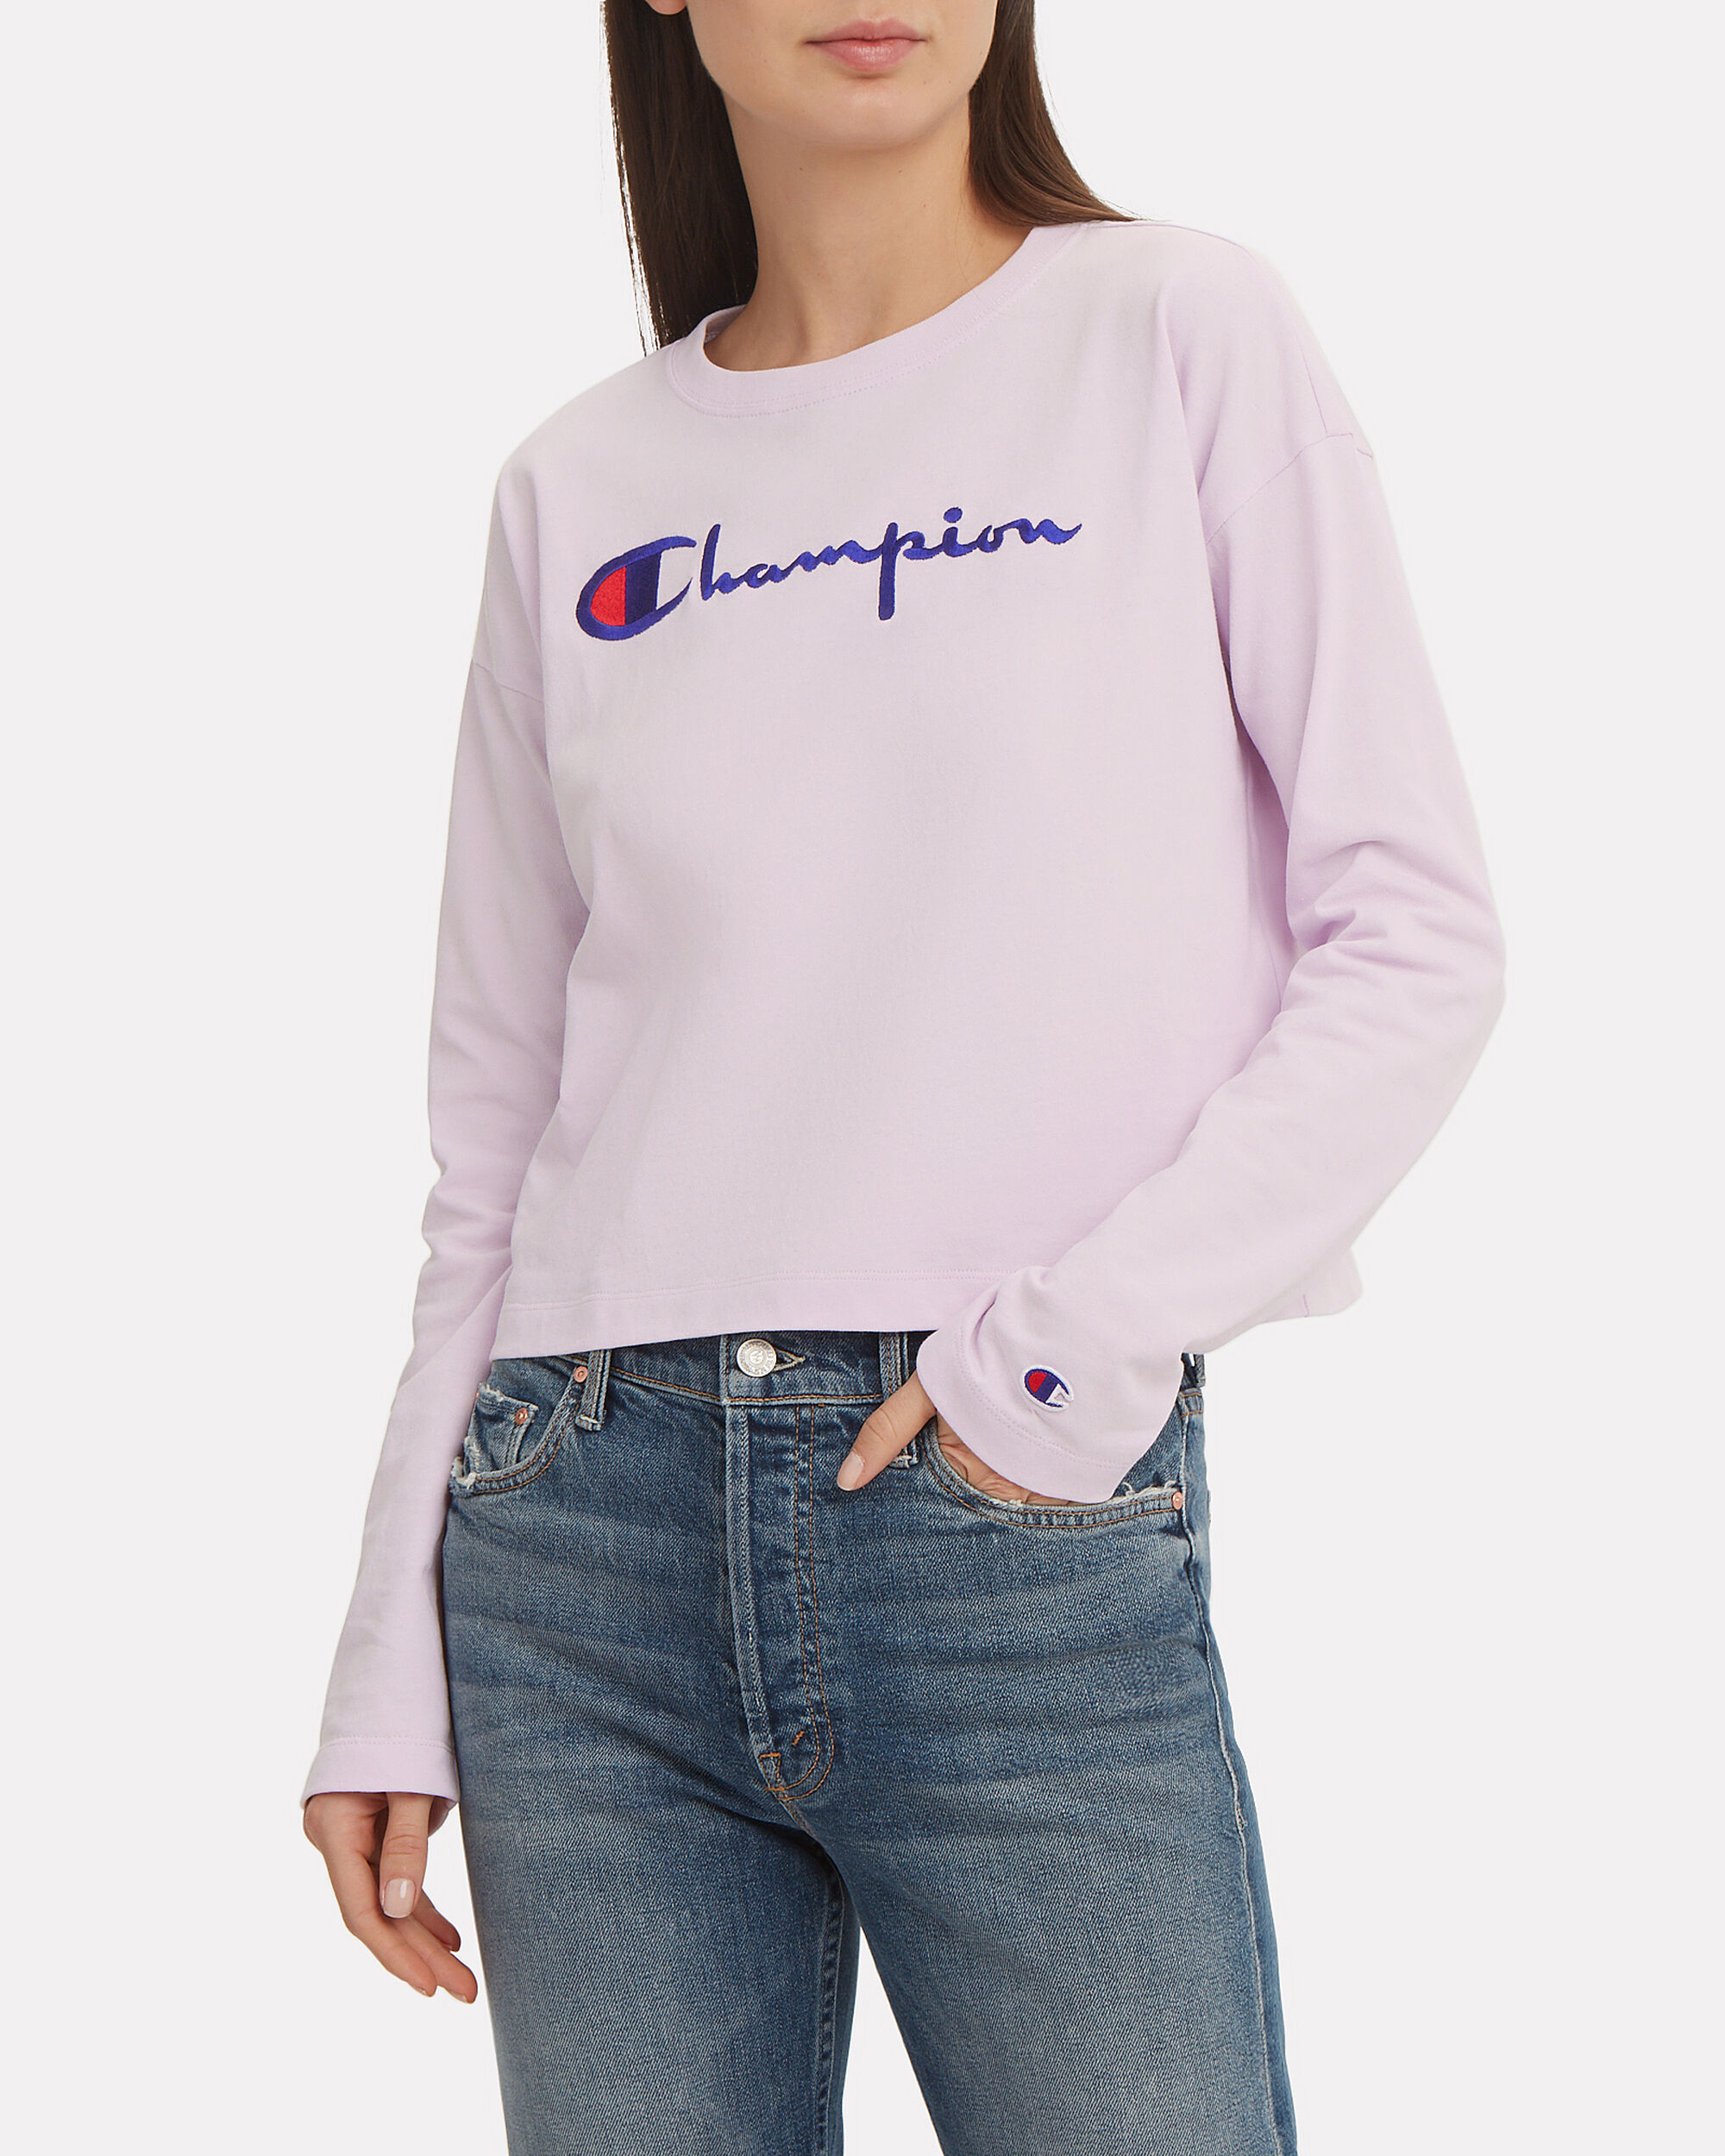 Logo Crop Top, LAVENDER, hi-res